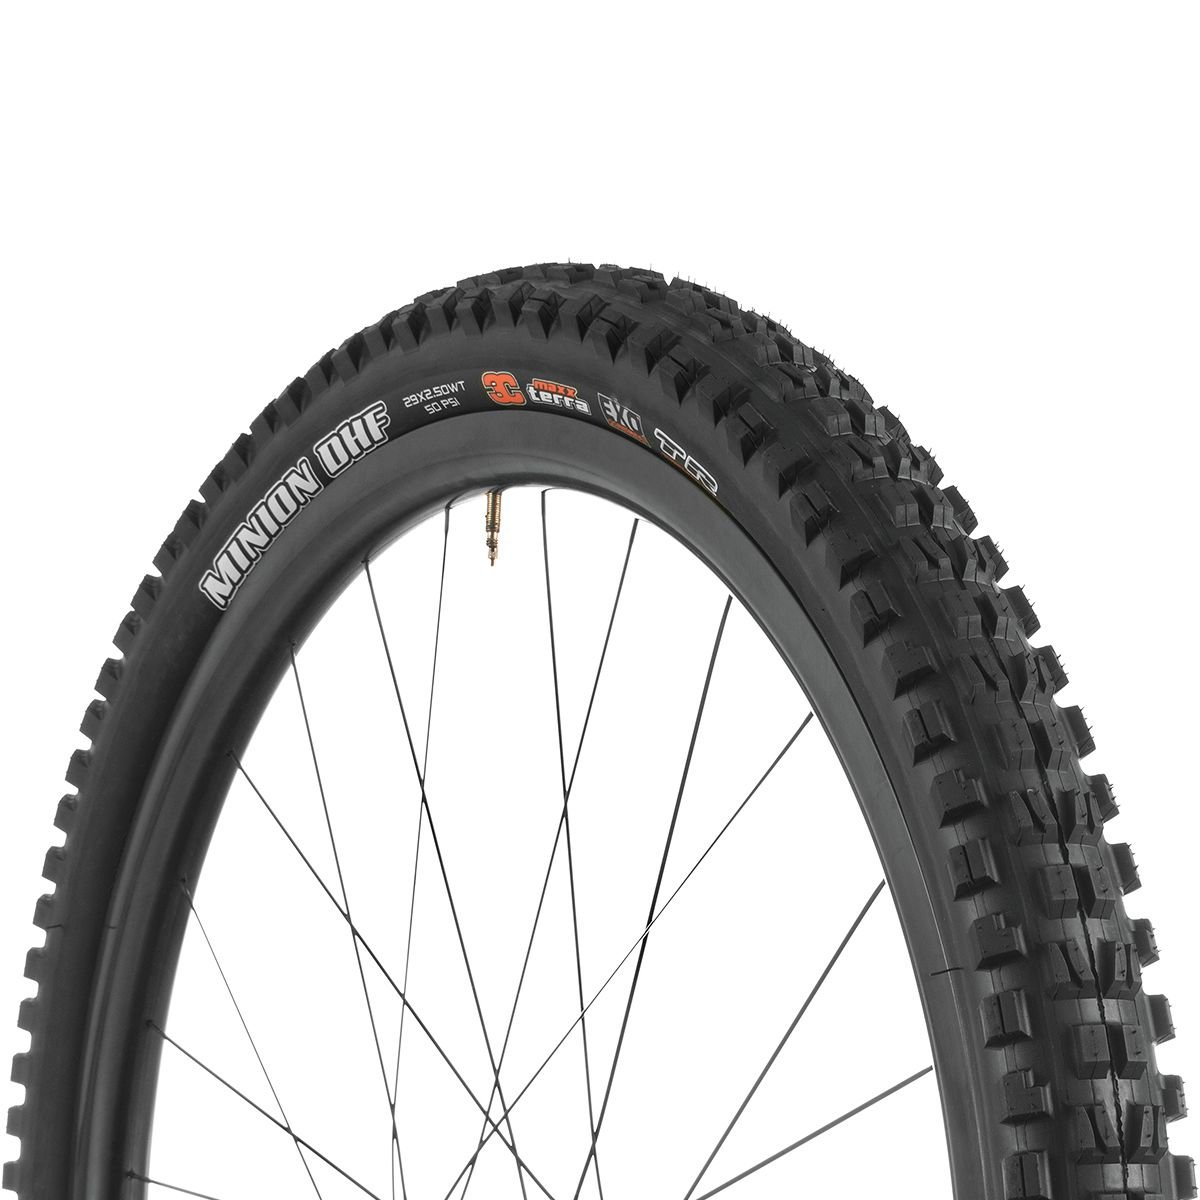 Maxxis Minion DHF Wide Trail 3 C/Exo/Trタイヤ – 29 in B07CRP4K183C/EXO/TR 29x2.5